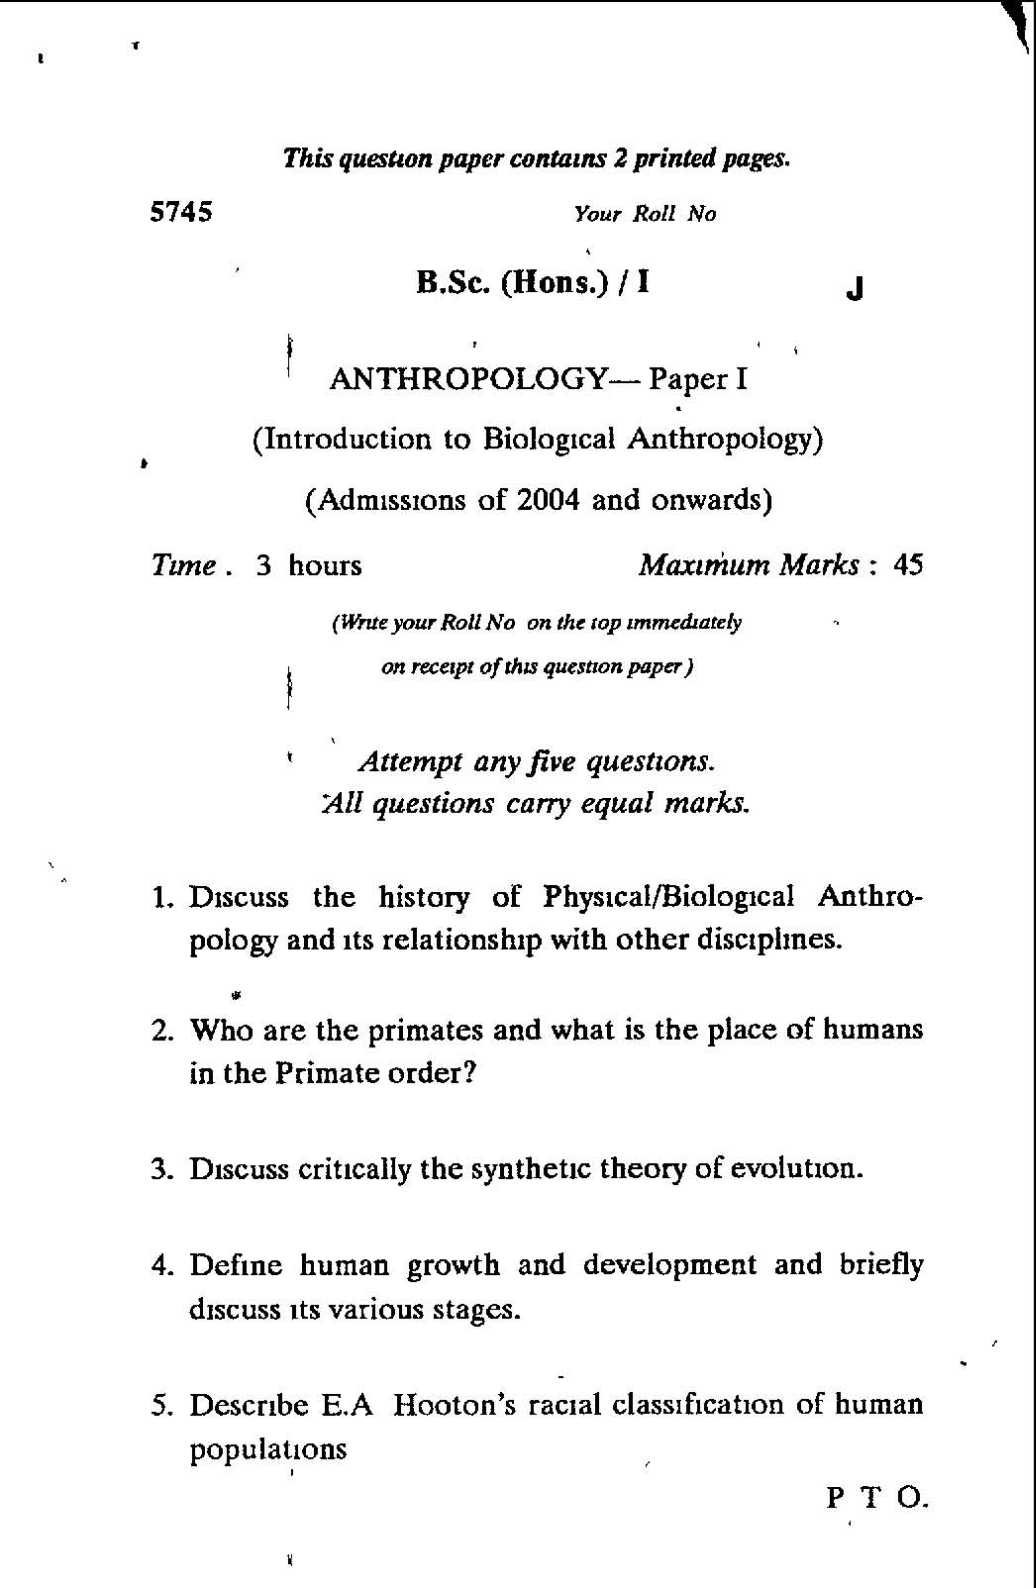 Order anthropology admission paper top article review ghostwriter for hire gb